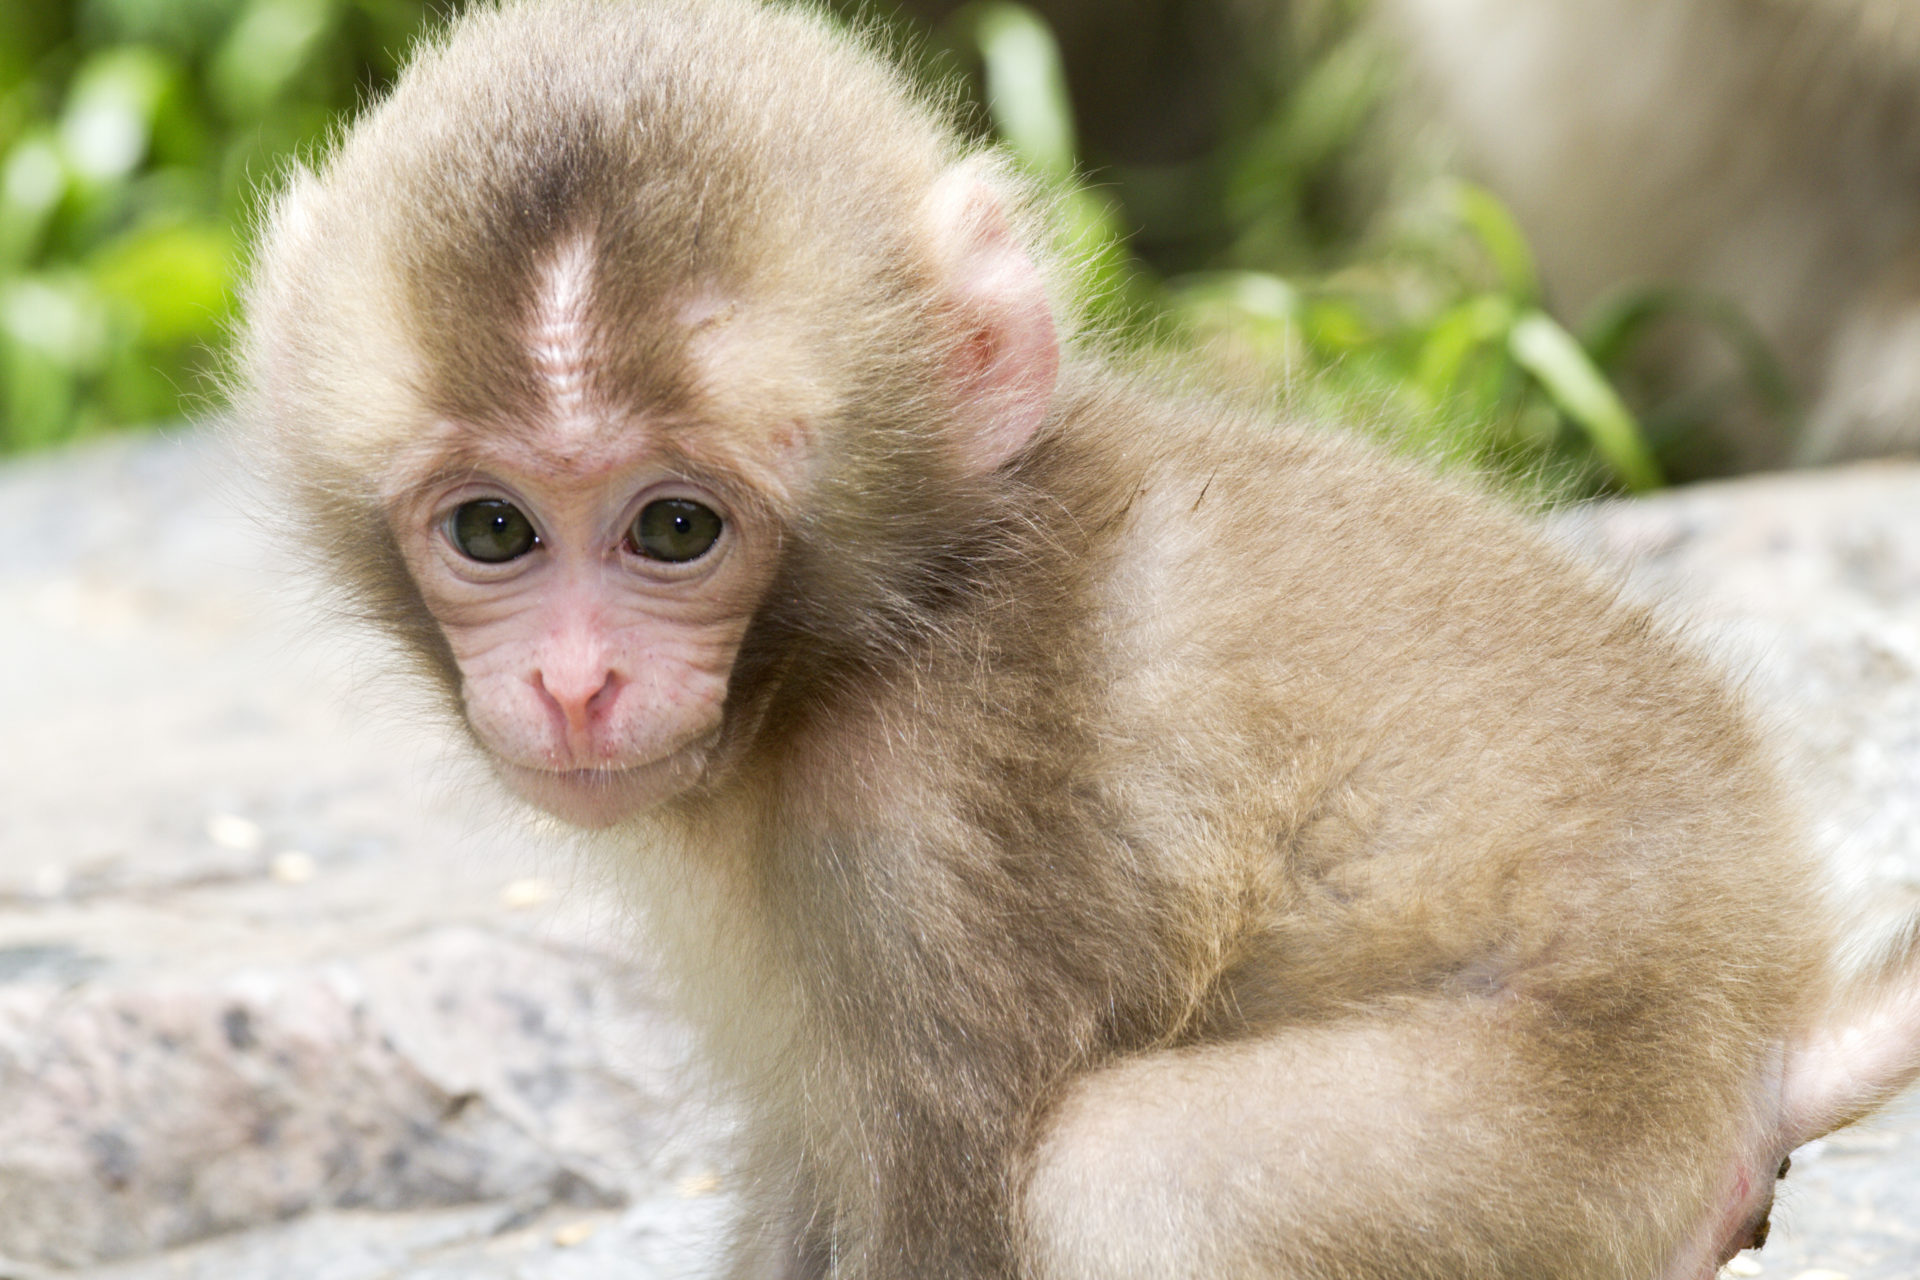 Baby Monkeys - Such a Cute Animal - Impressive Nature